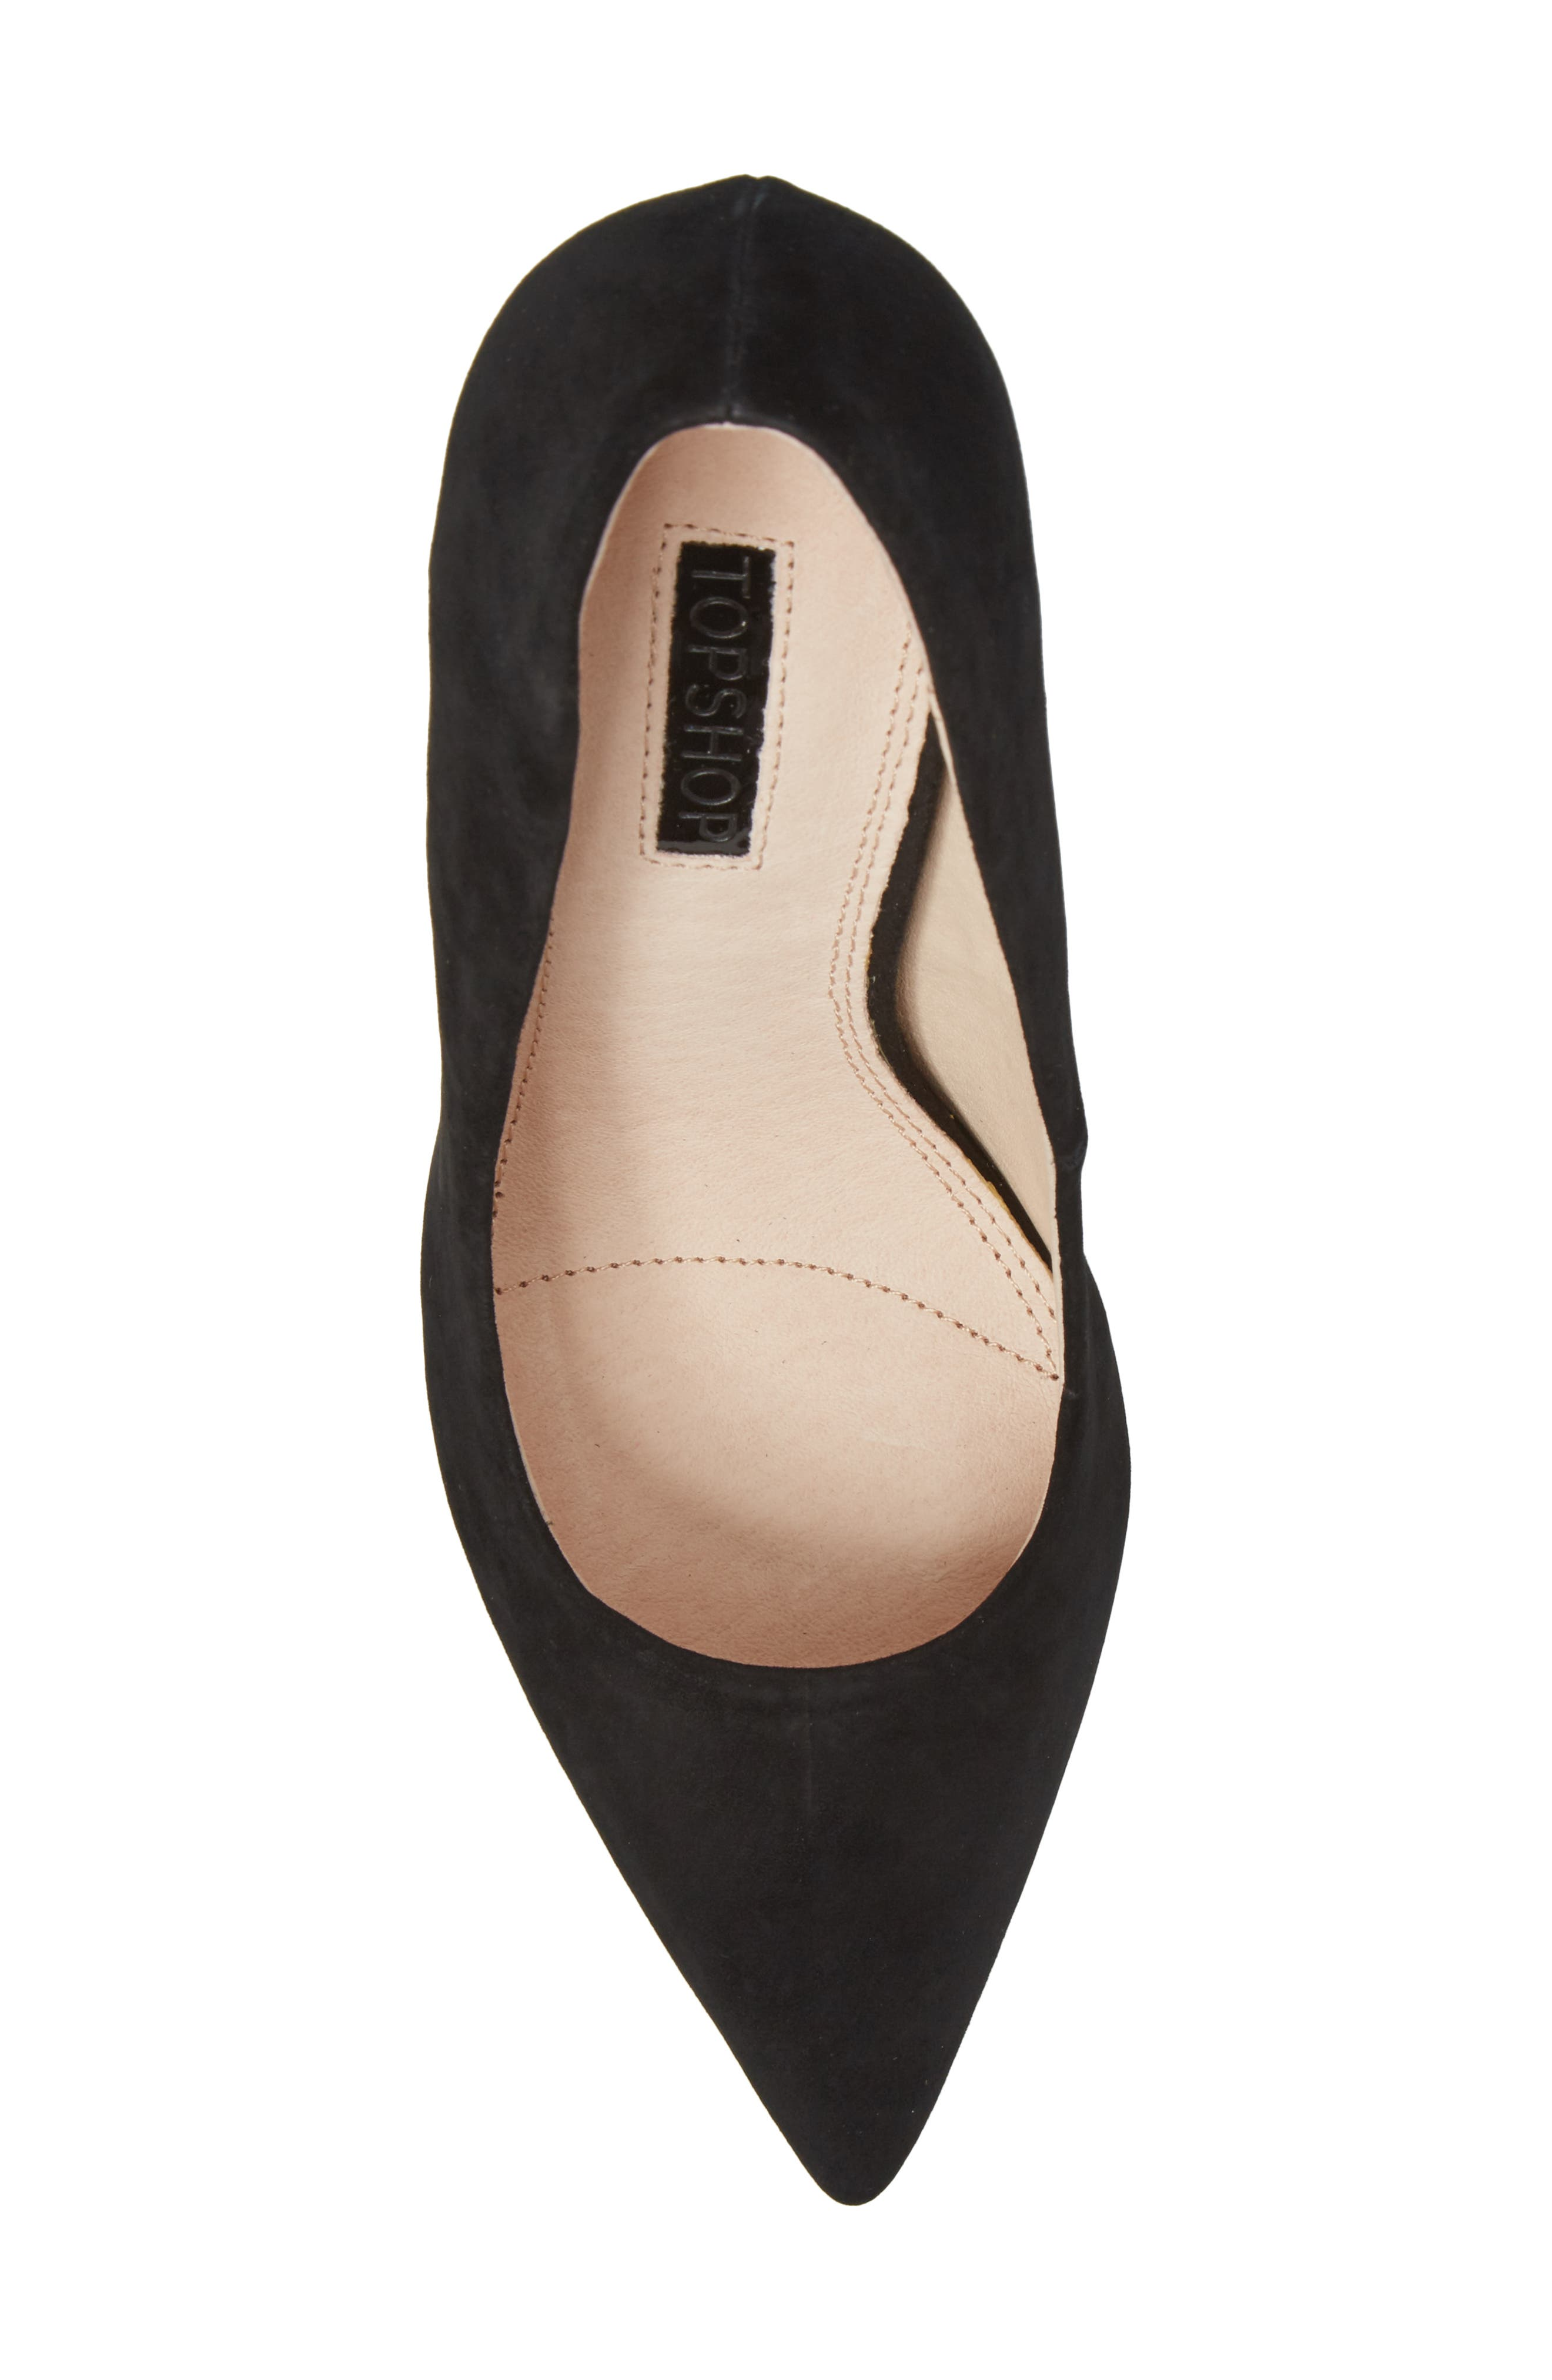 Grammer Pointy Toe Pump,                             Alternate thumbnail 5, color,                             Black Leather